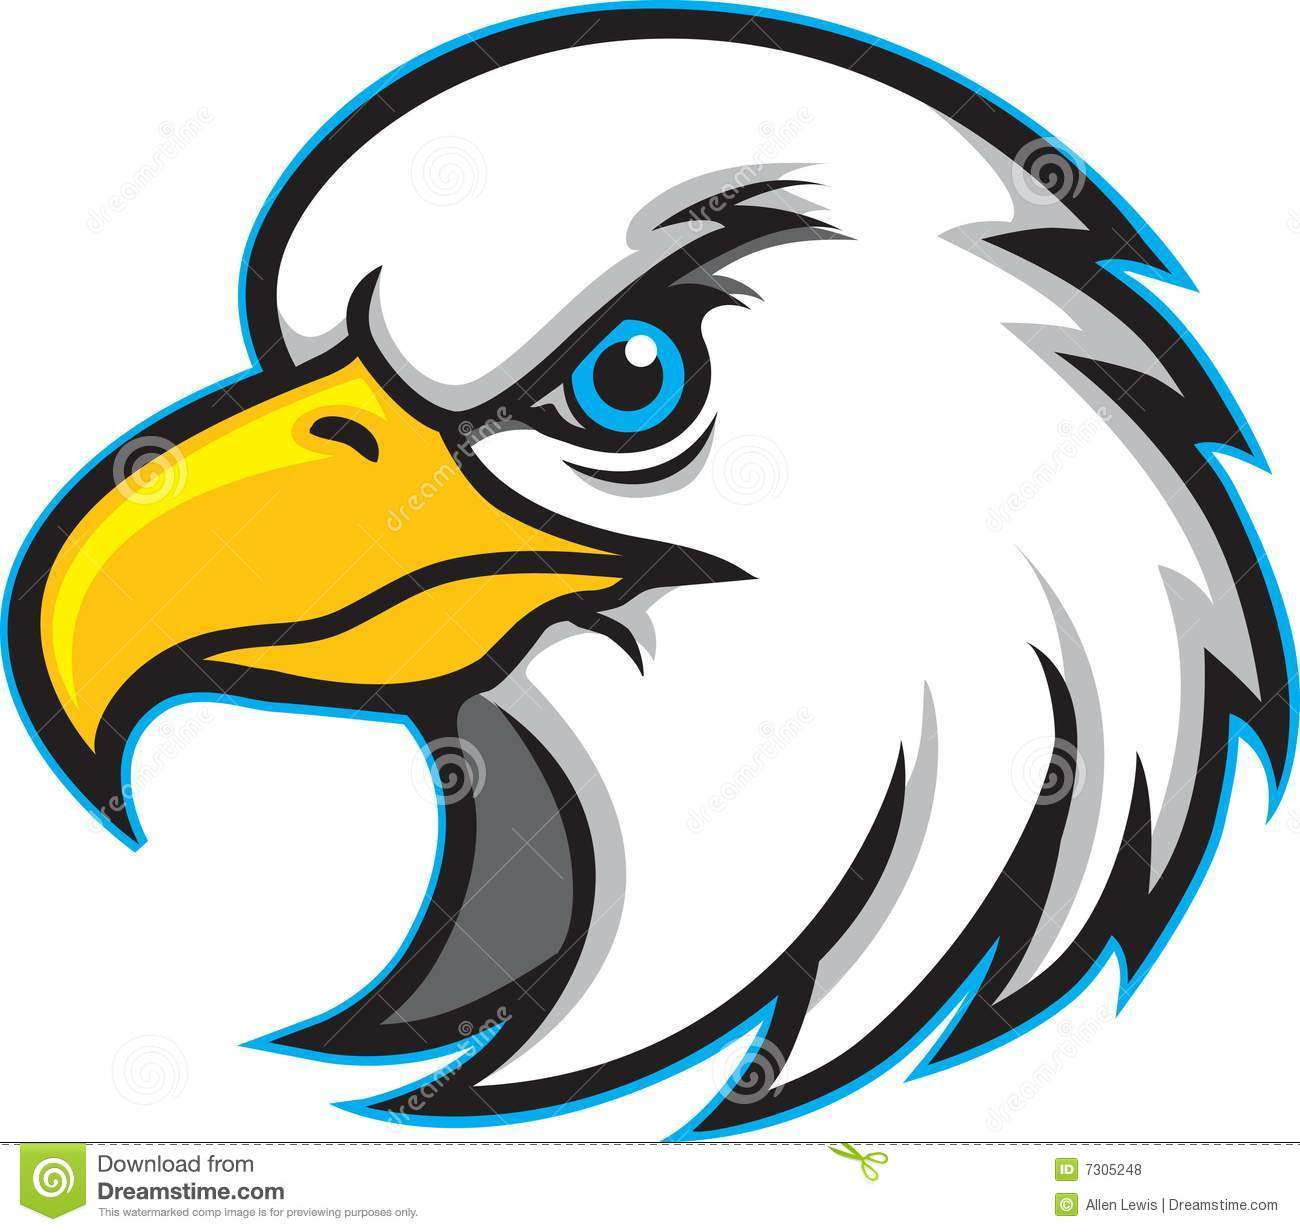 Eagle Clipart Free | Free download best Eagle Clipart Free on ...